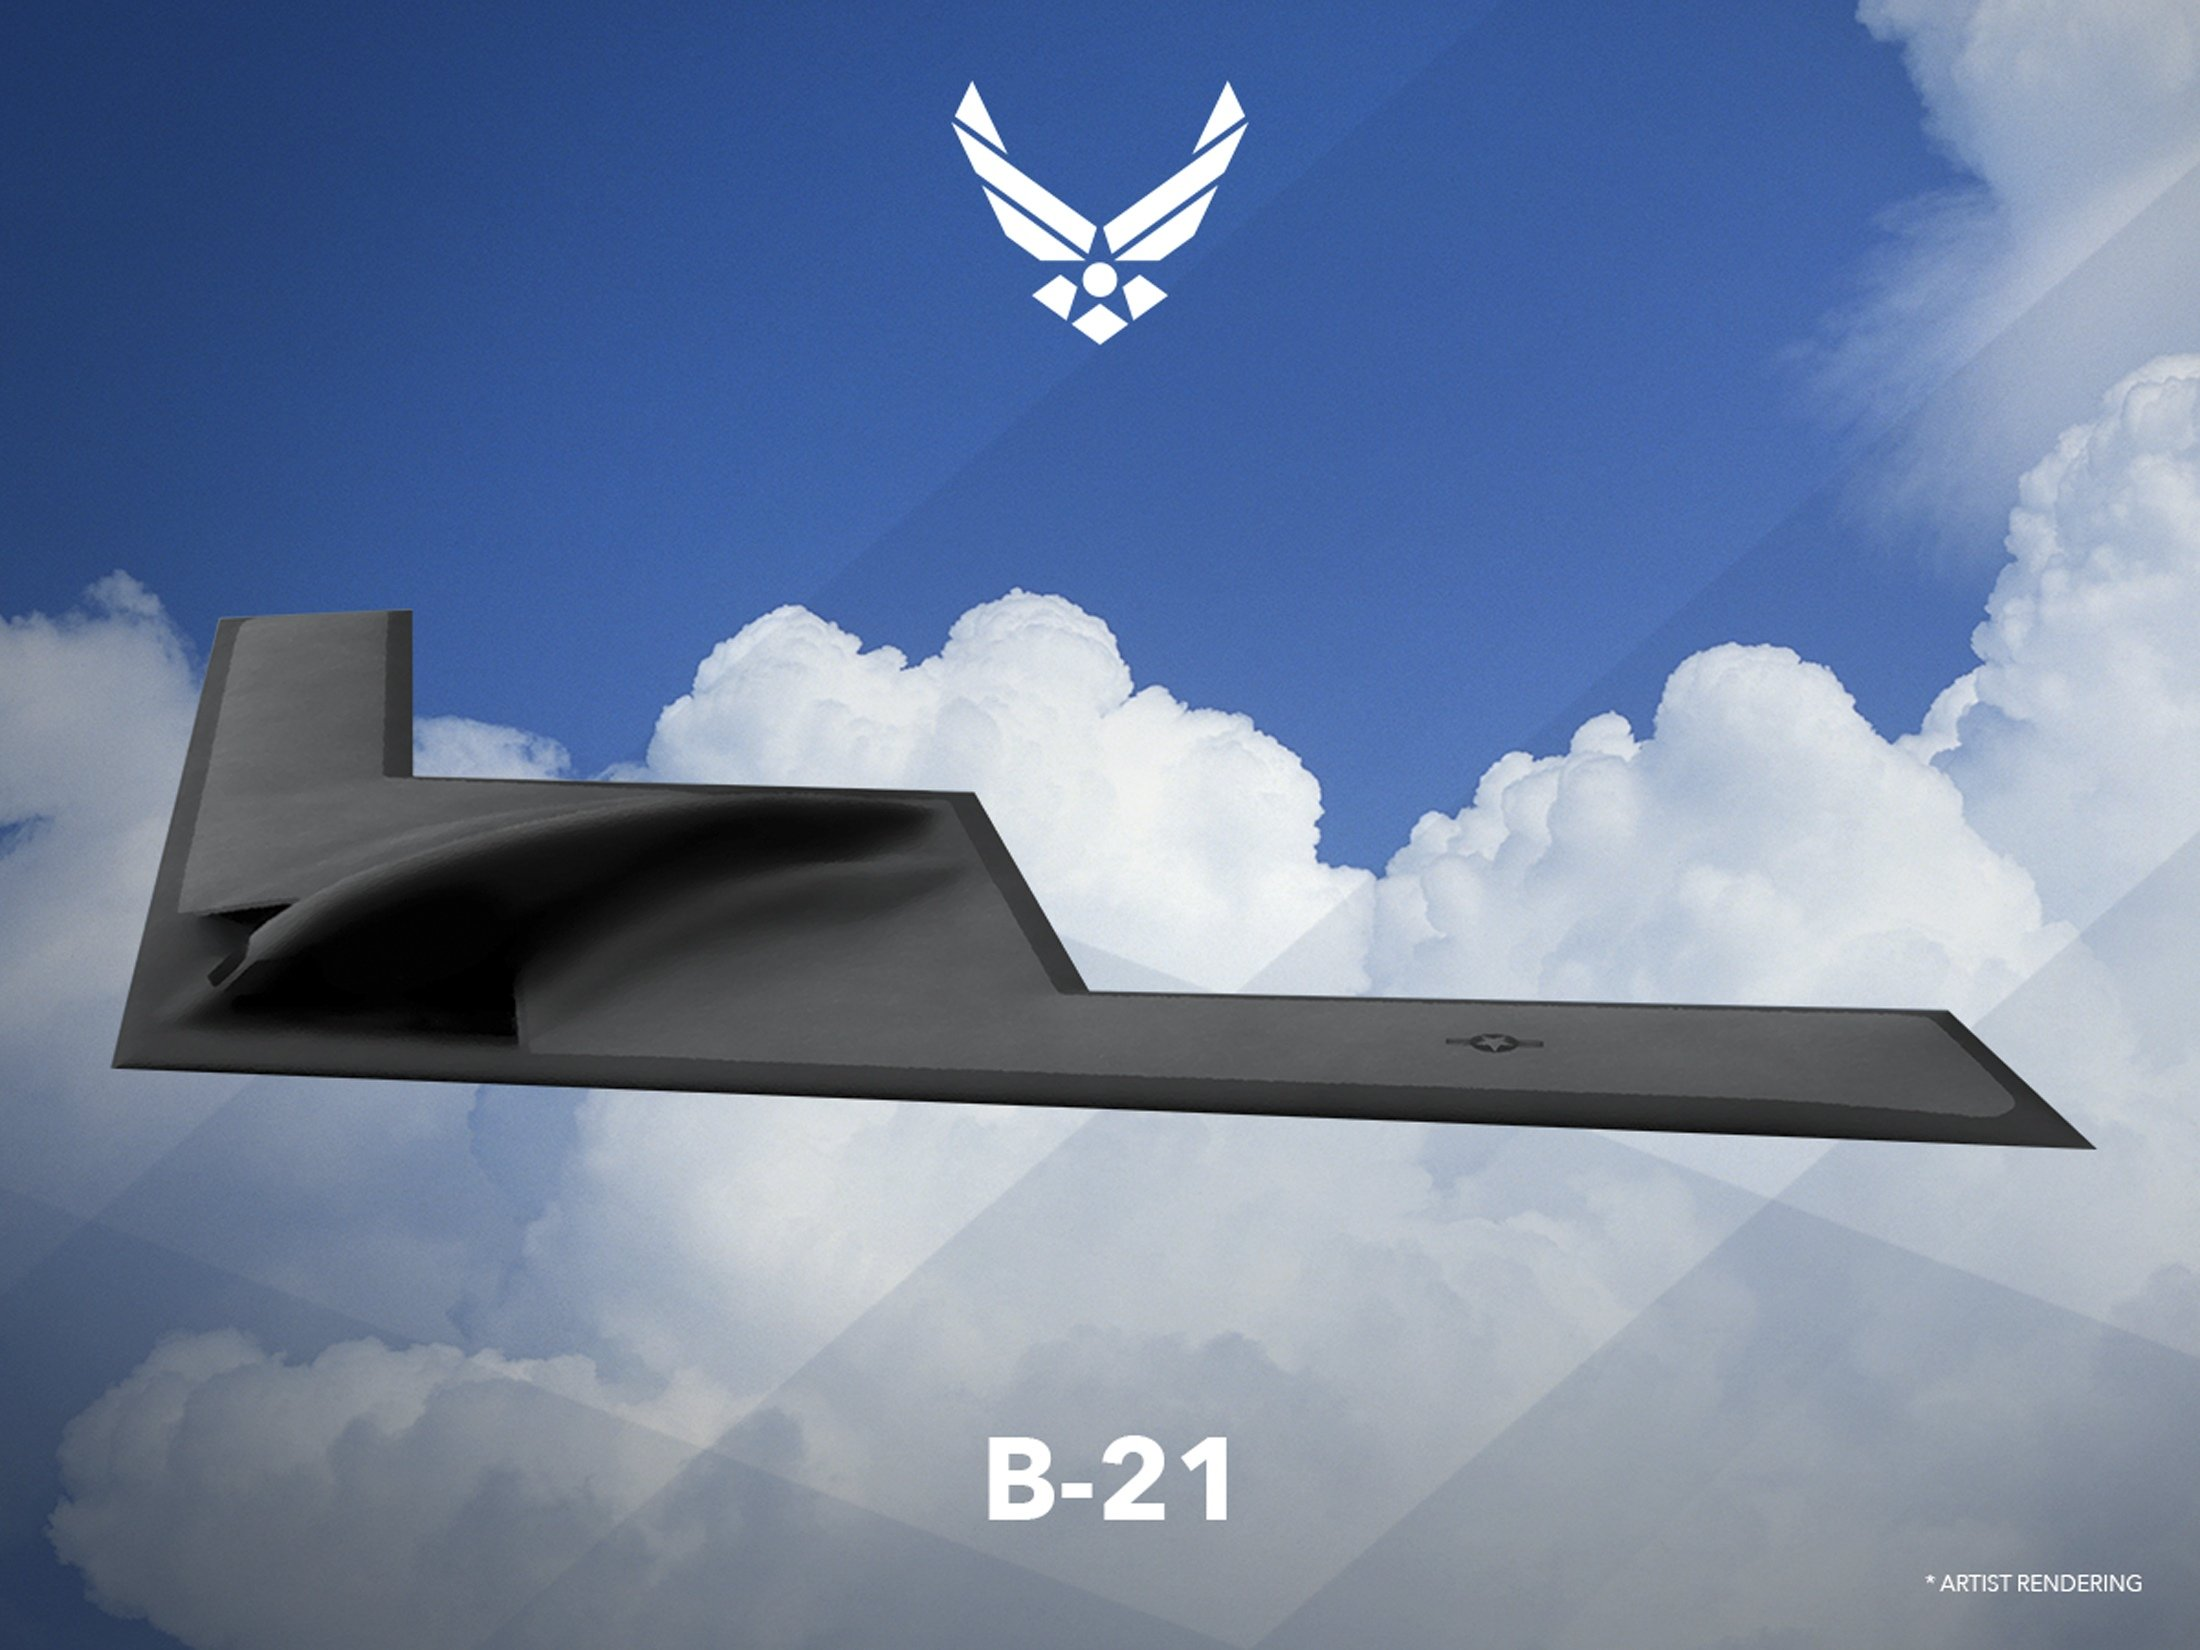 An artist rendering shows the first image of a new Northrop Grumman Corp long-range bomber B21, released on Feb. 26, 2016.